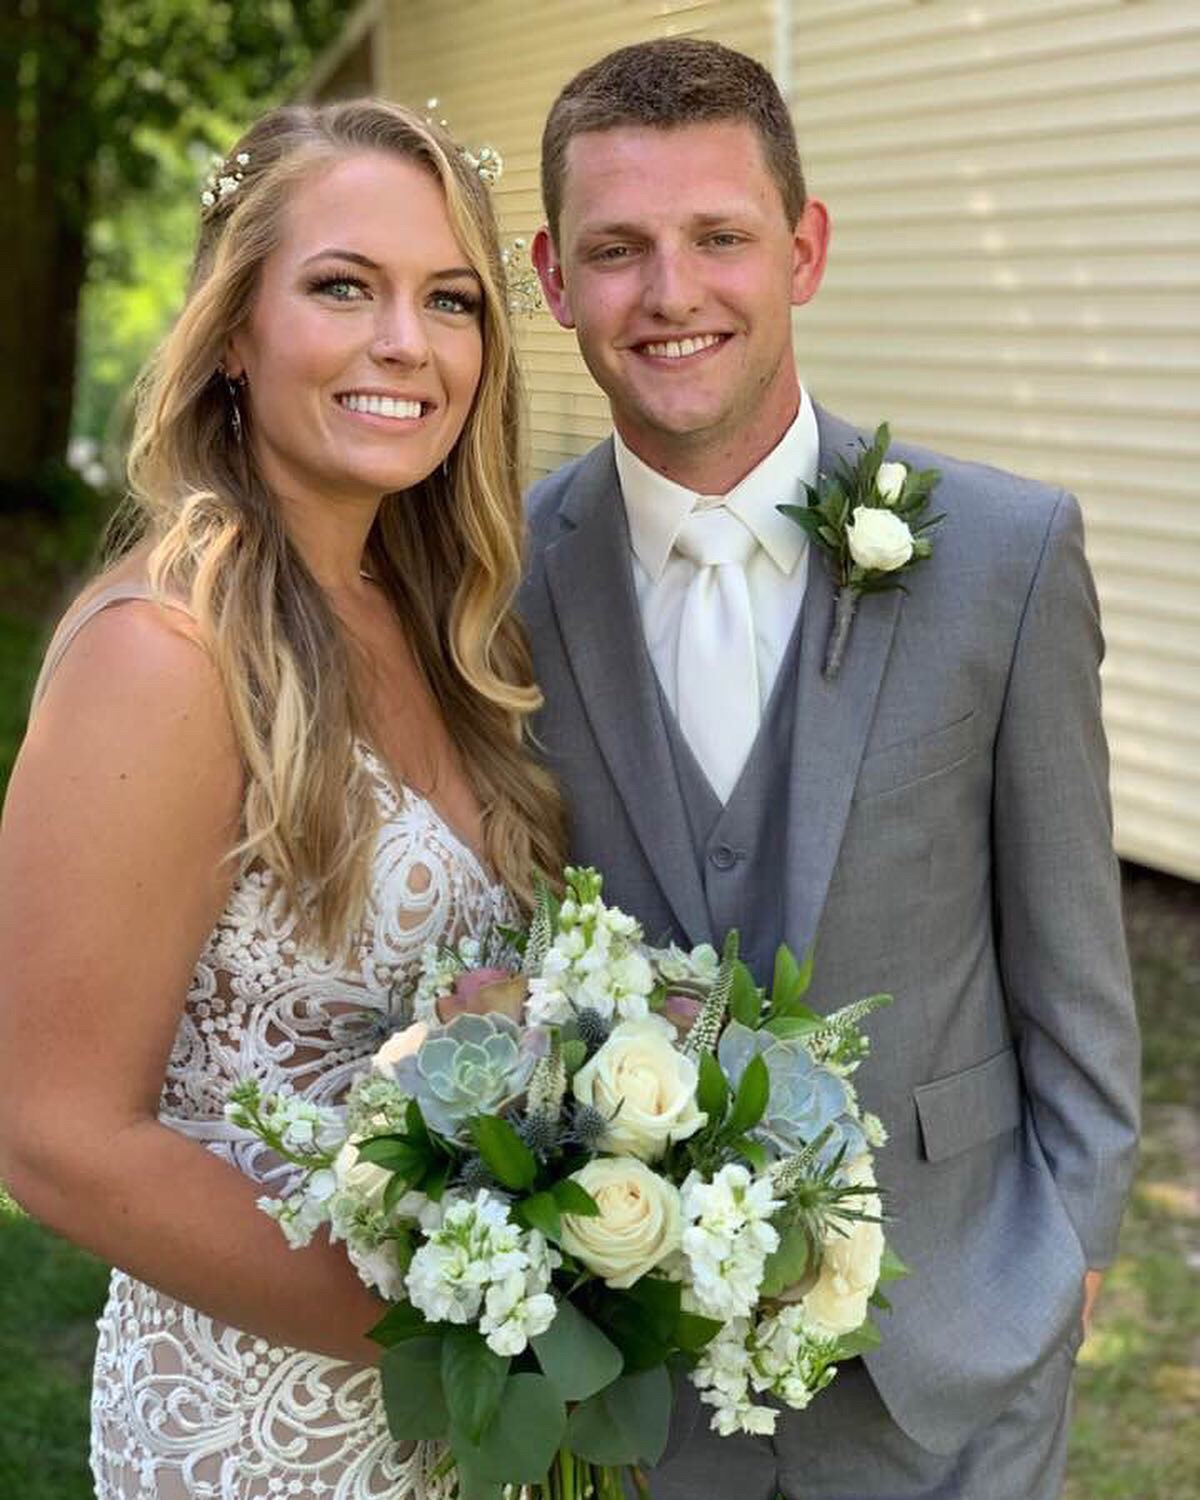 Congratulations to Jason & Erica